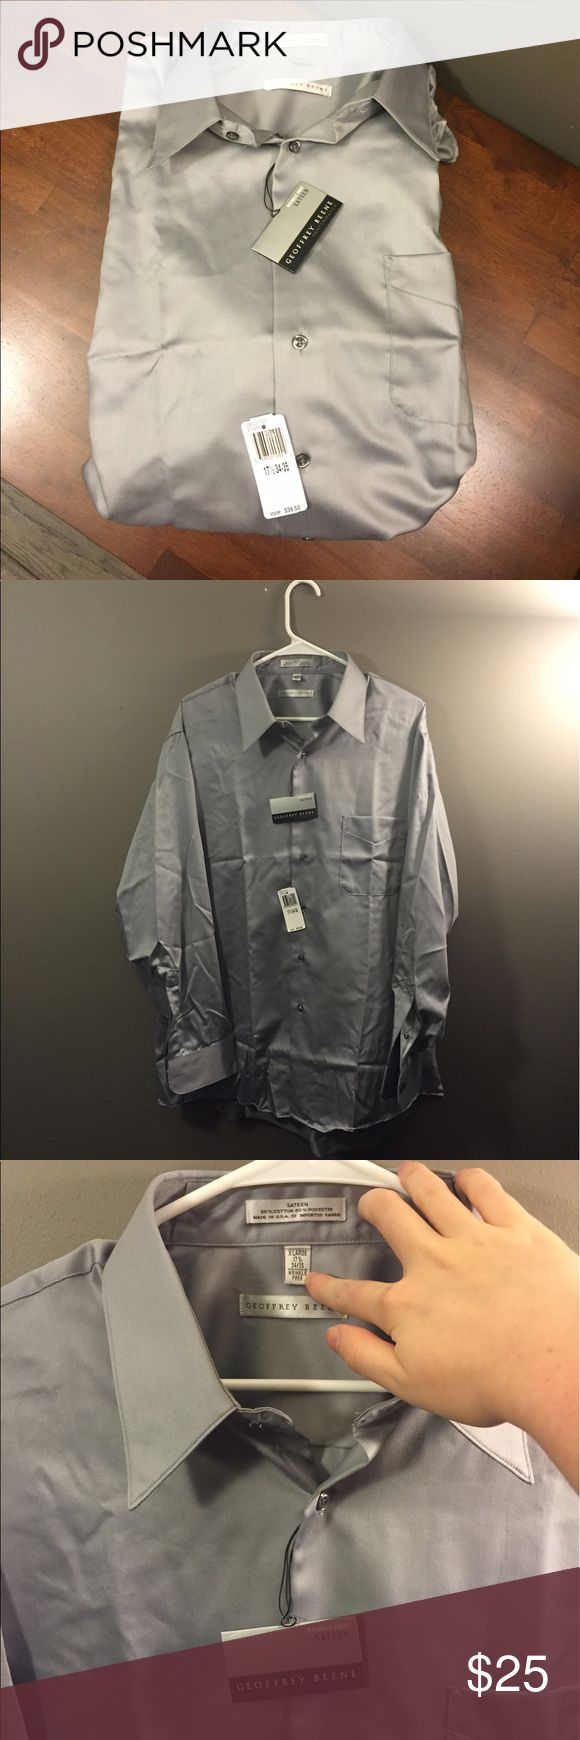 🆕 Geoffrey Beene Silver Sateen Button Down NWT Brand new with tags! Perfect for weddings! 17 1/2 34-35 Geoffrey Beene Shirts Dress Shirts